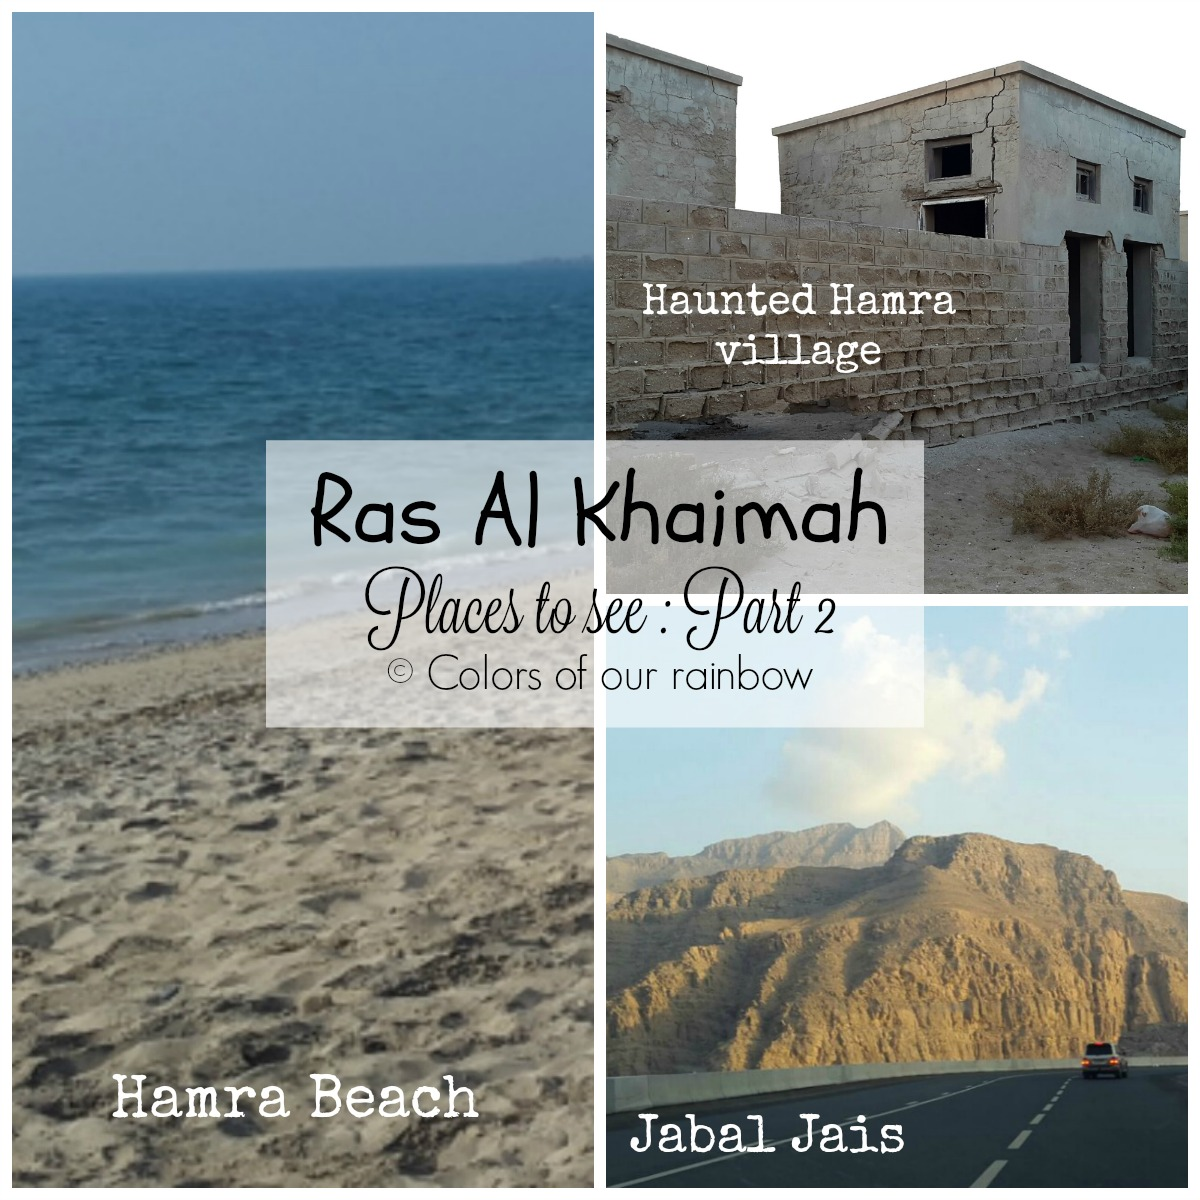 Colors Of Our Rainbow Ras Al Khaimah Places To Visit Al Hamra Beach Haunted Village Jabal Jais